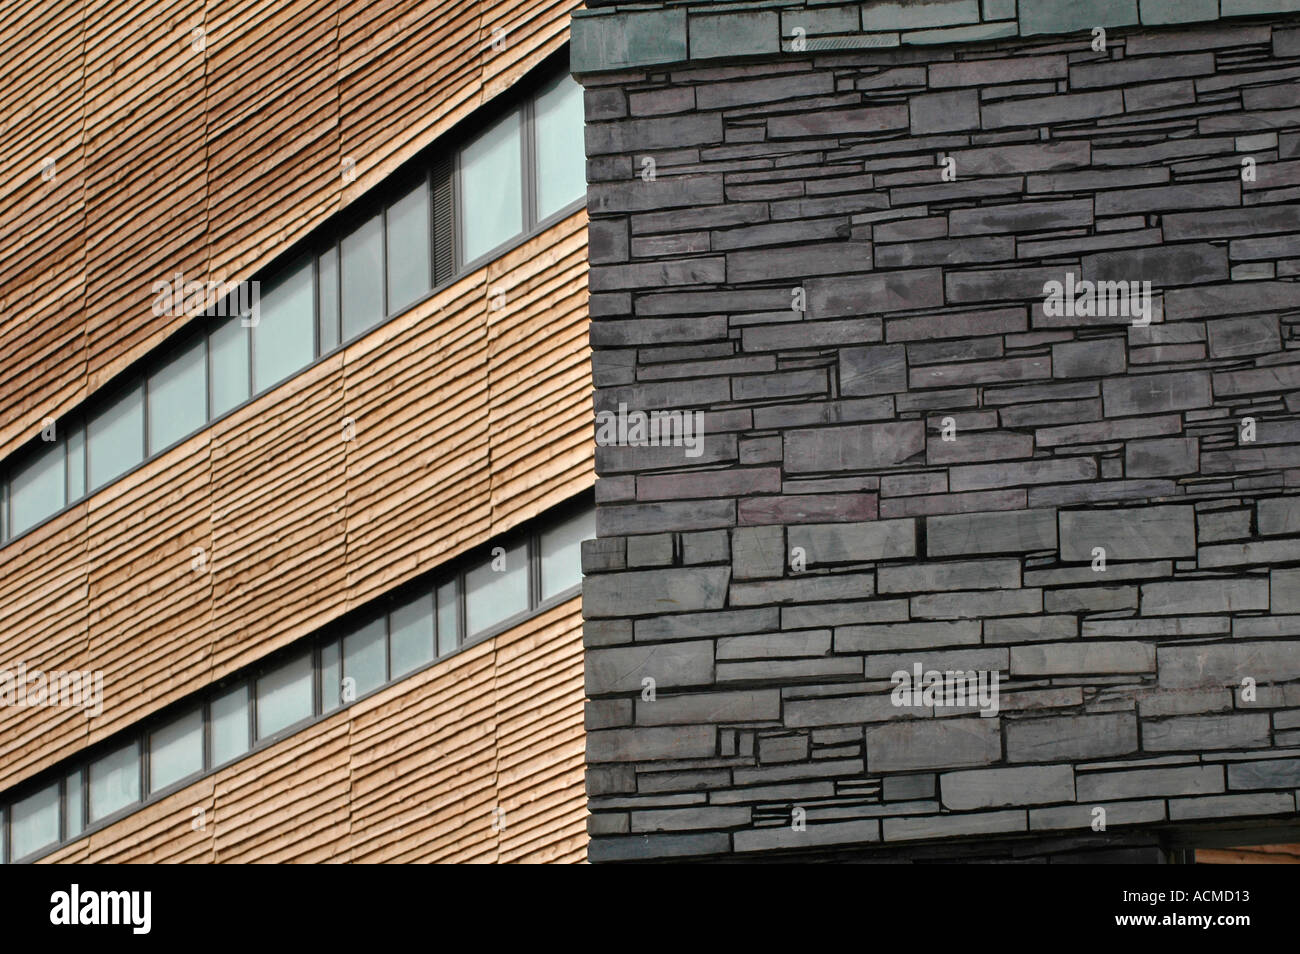 Welsh Slate Wall And Timber Cladding Exterior Details Of The Wales Stock Photo Royalty Free